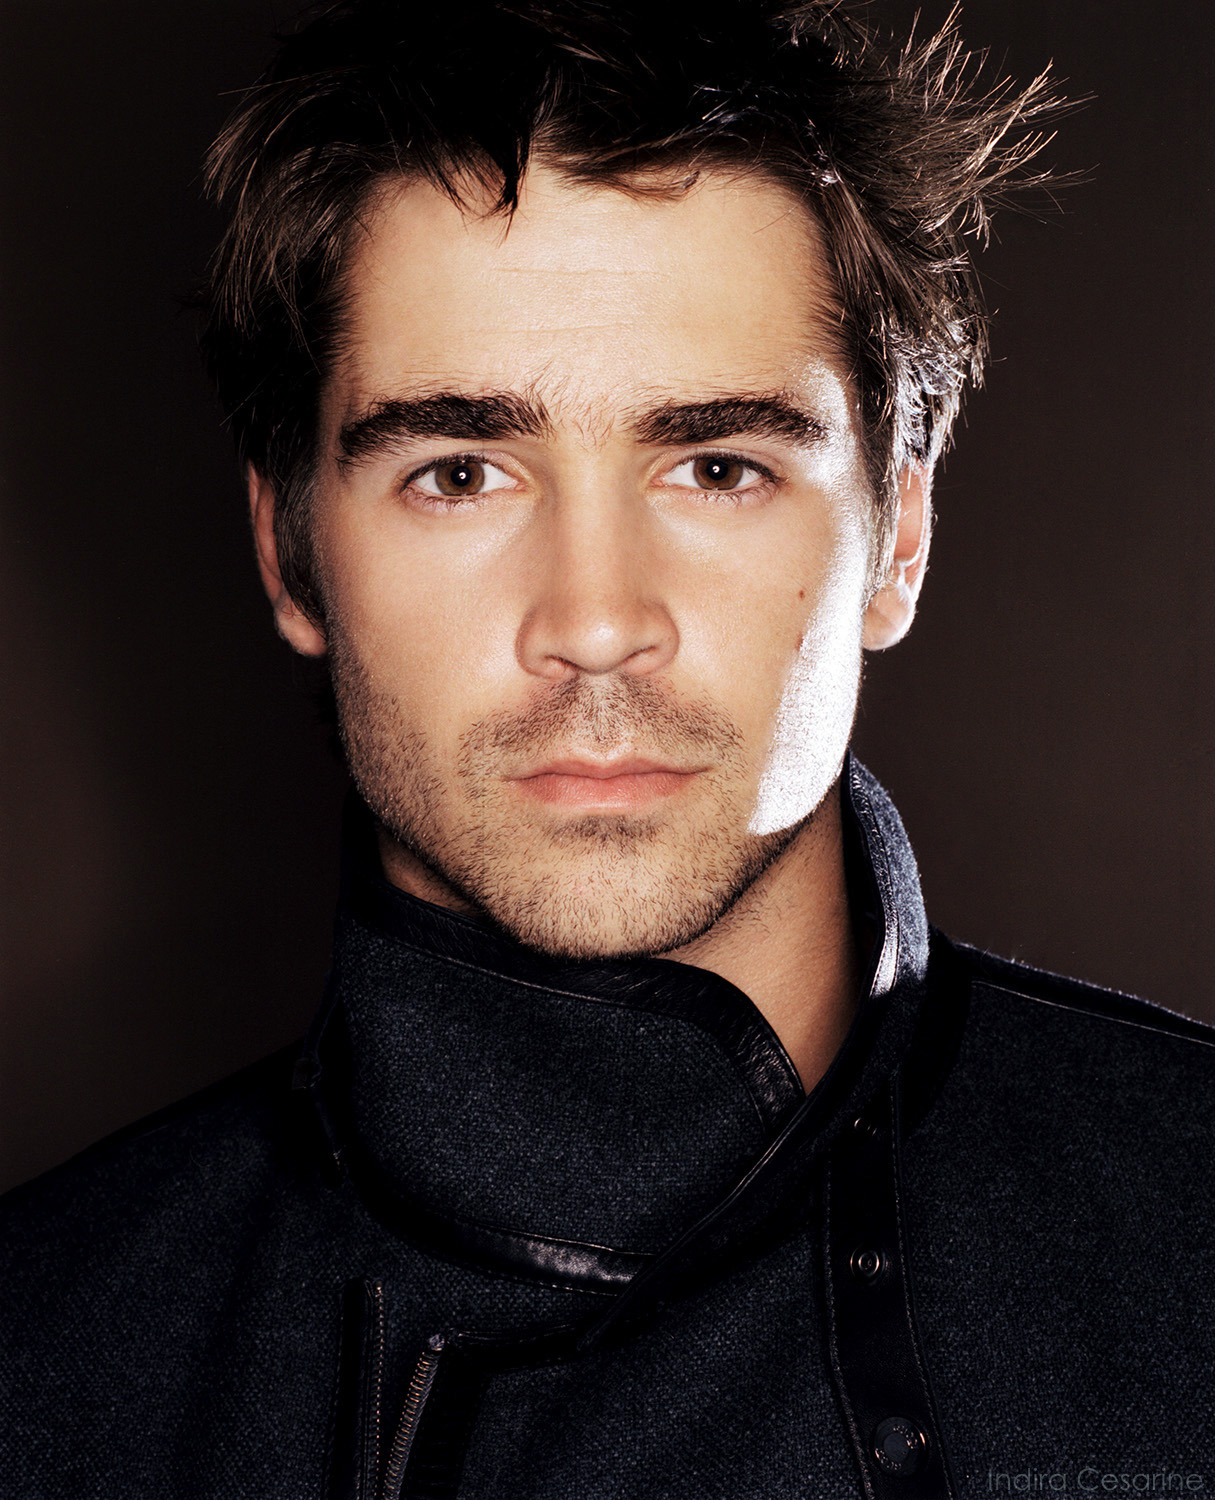 COLIN-FARRELL-Photography-by-Indira-Cesarine-002x.jpg